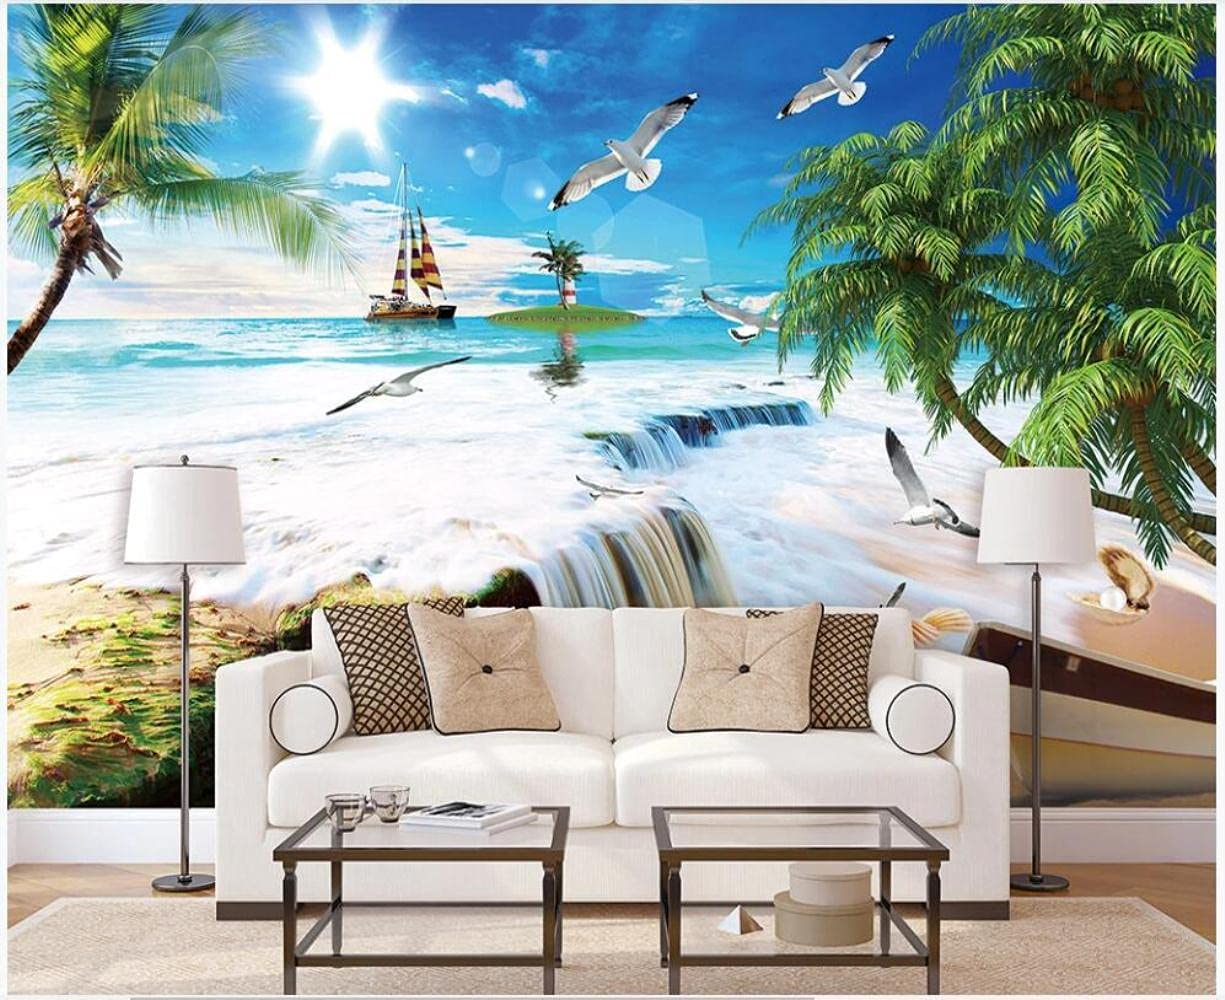 MAZF Custom Mural 2021 new 3D Photo Wallpaper Outlet ☆ Free Shipping Forest European Landscape B